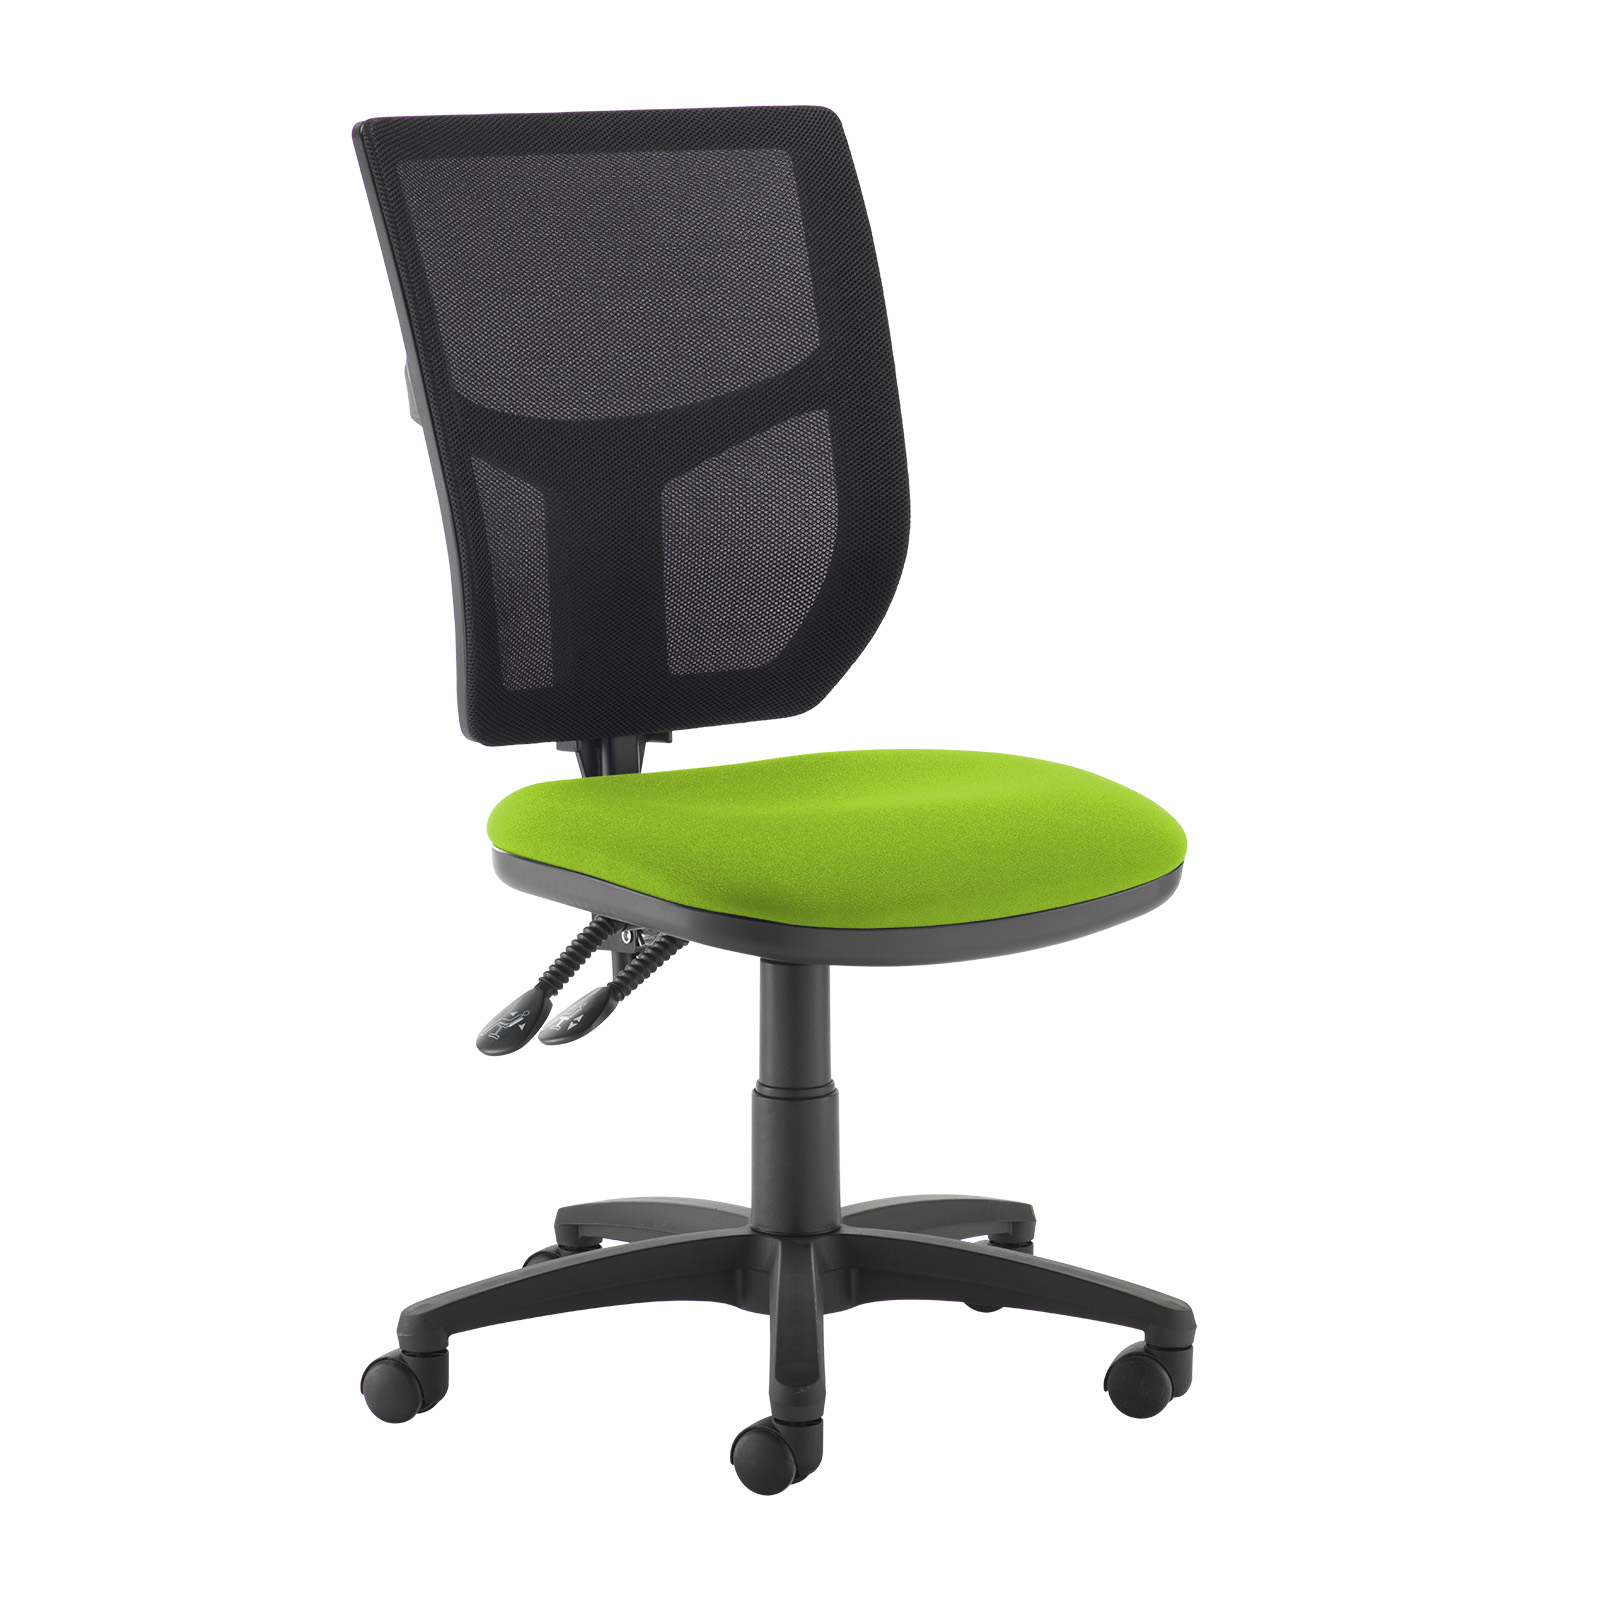 Desk Chairs Altino 2 lever high mesh back operators chair with no arms - green